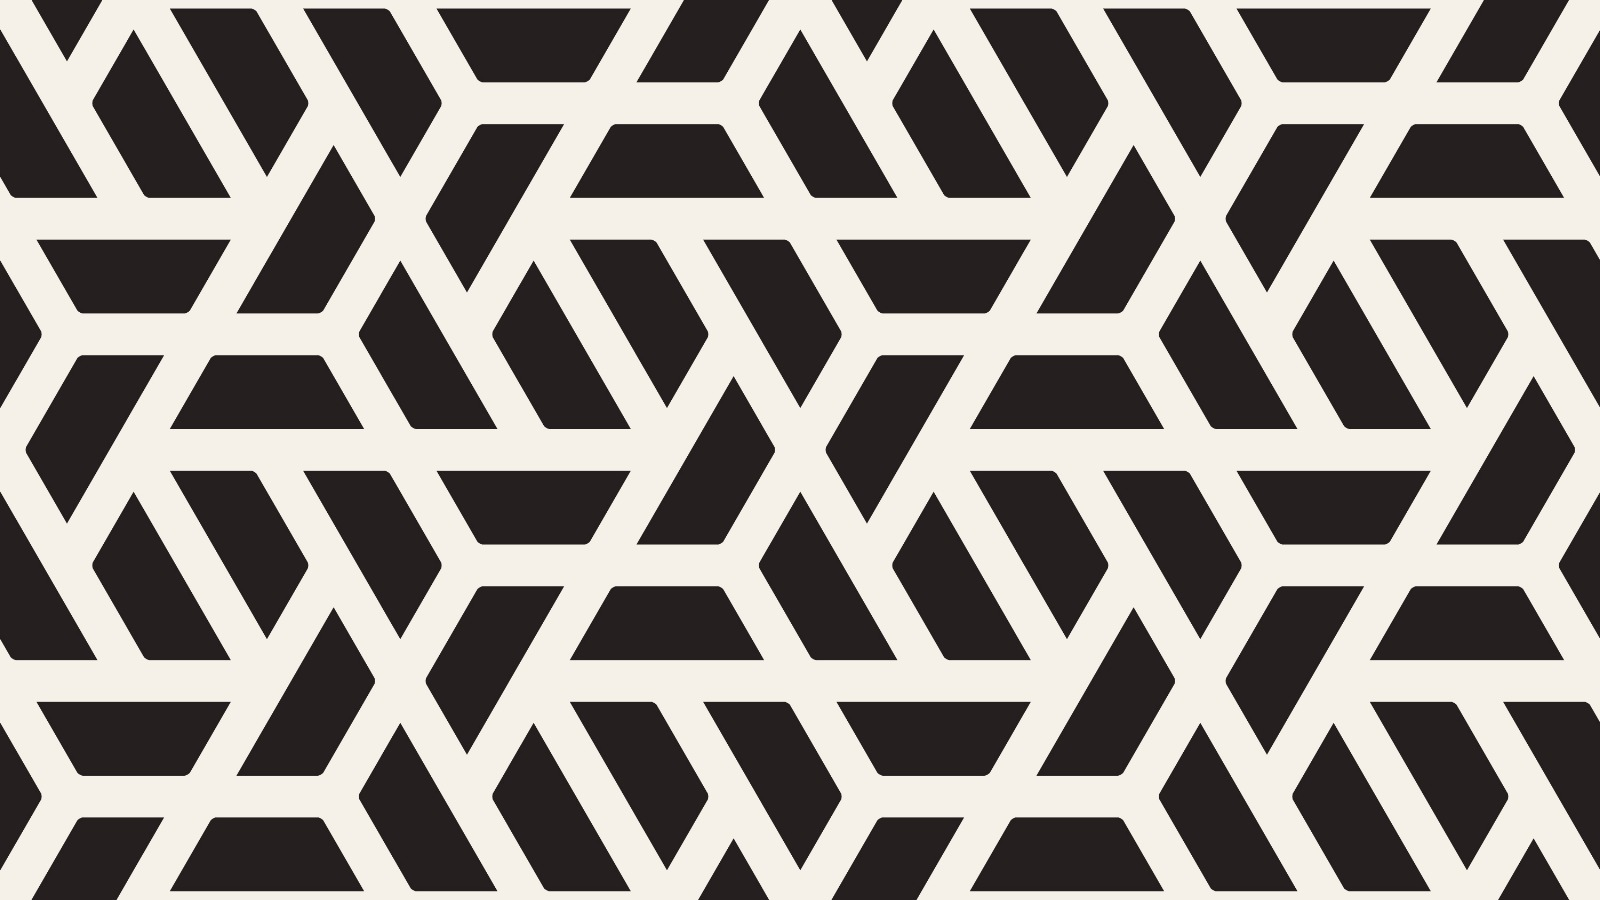 Seamless Geometric Pattern Vector Id867153192 Advertising Week 360 Aw360